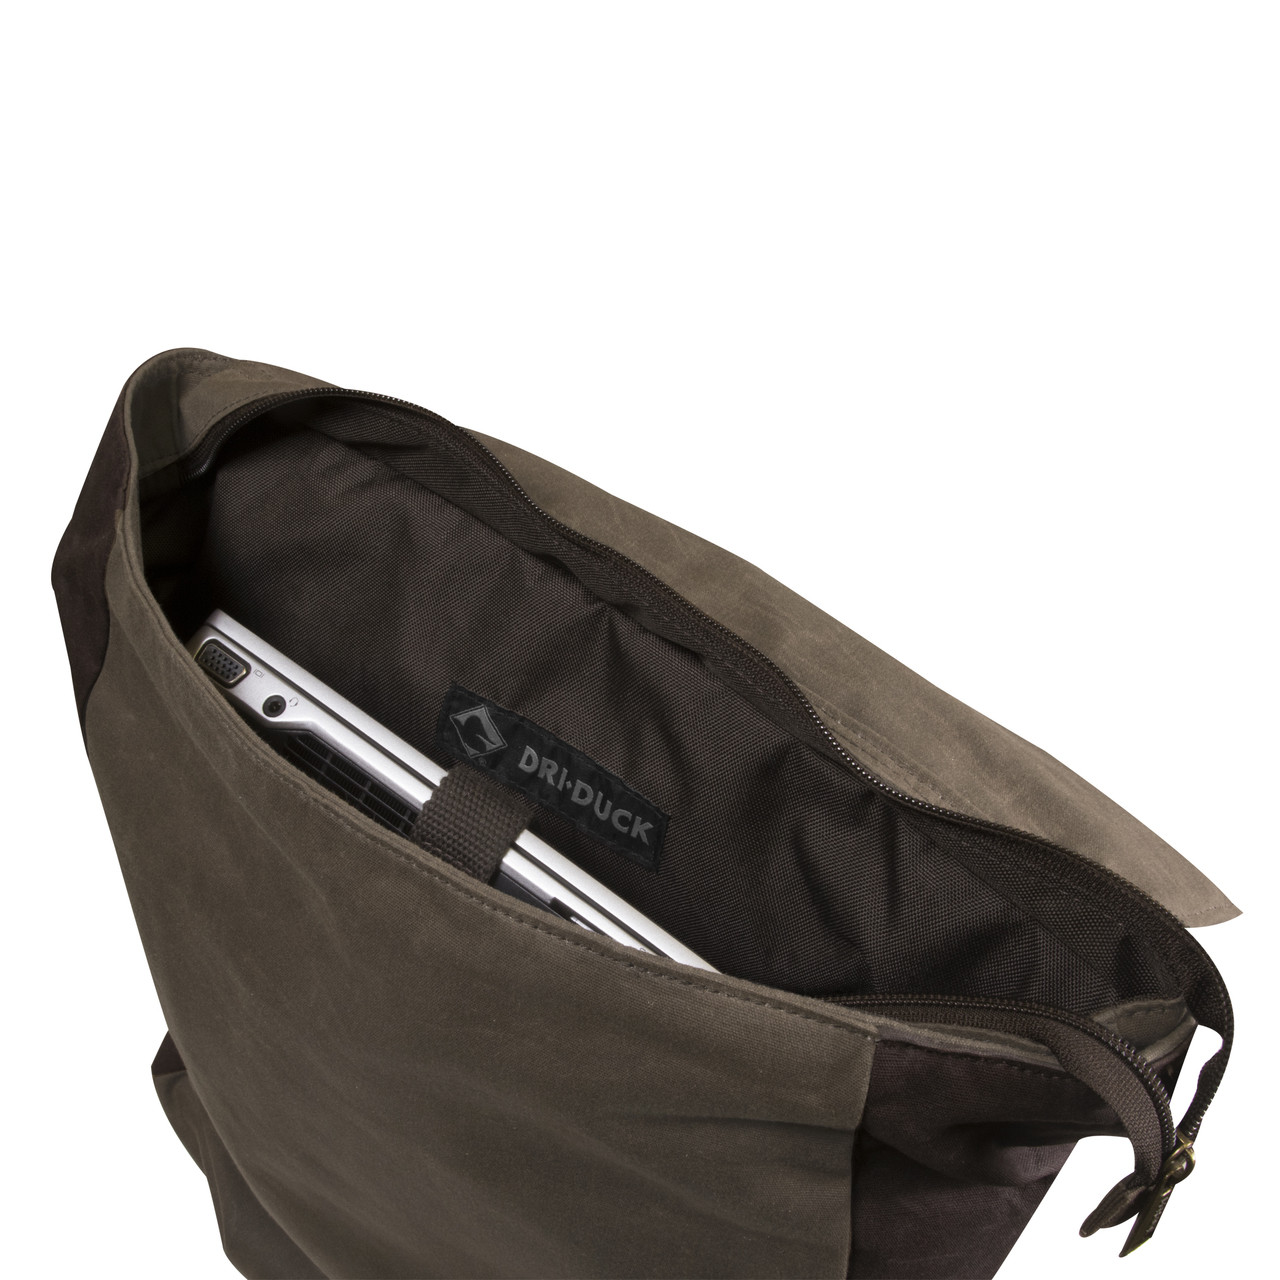 DriDuck Commuter Bag DD1041